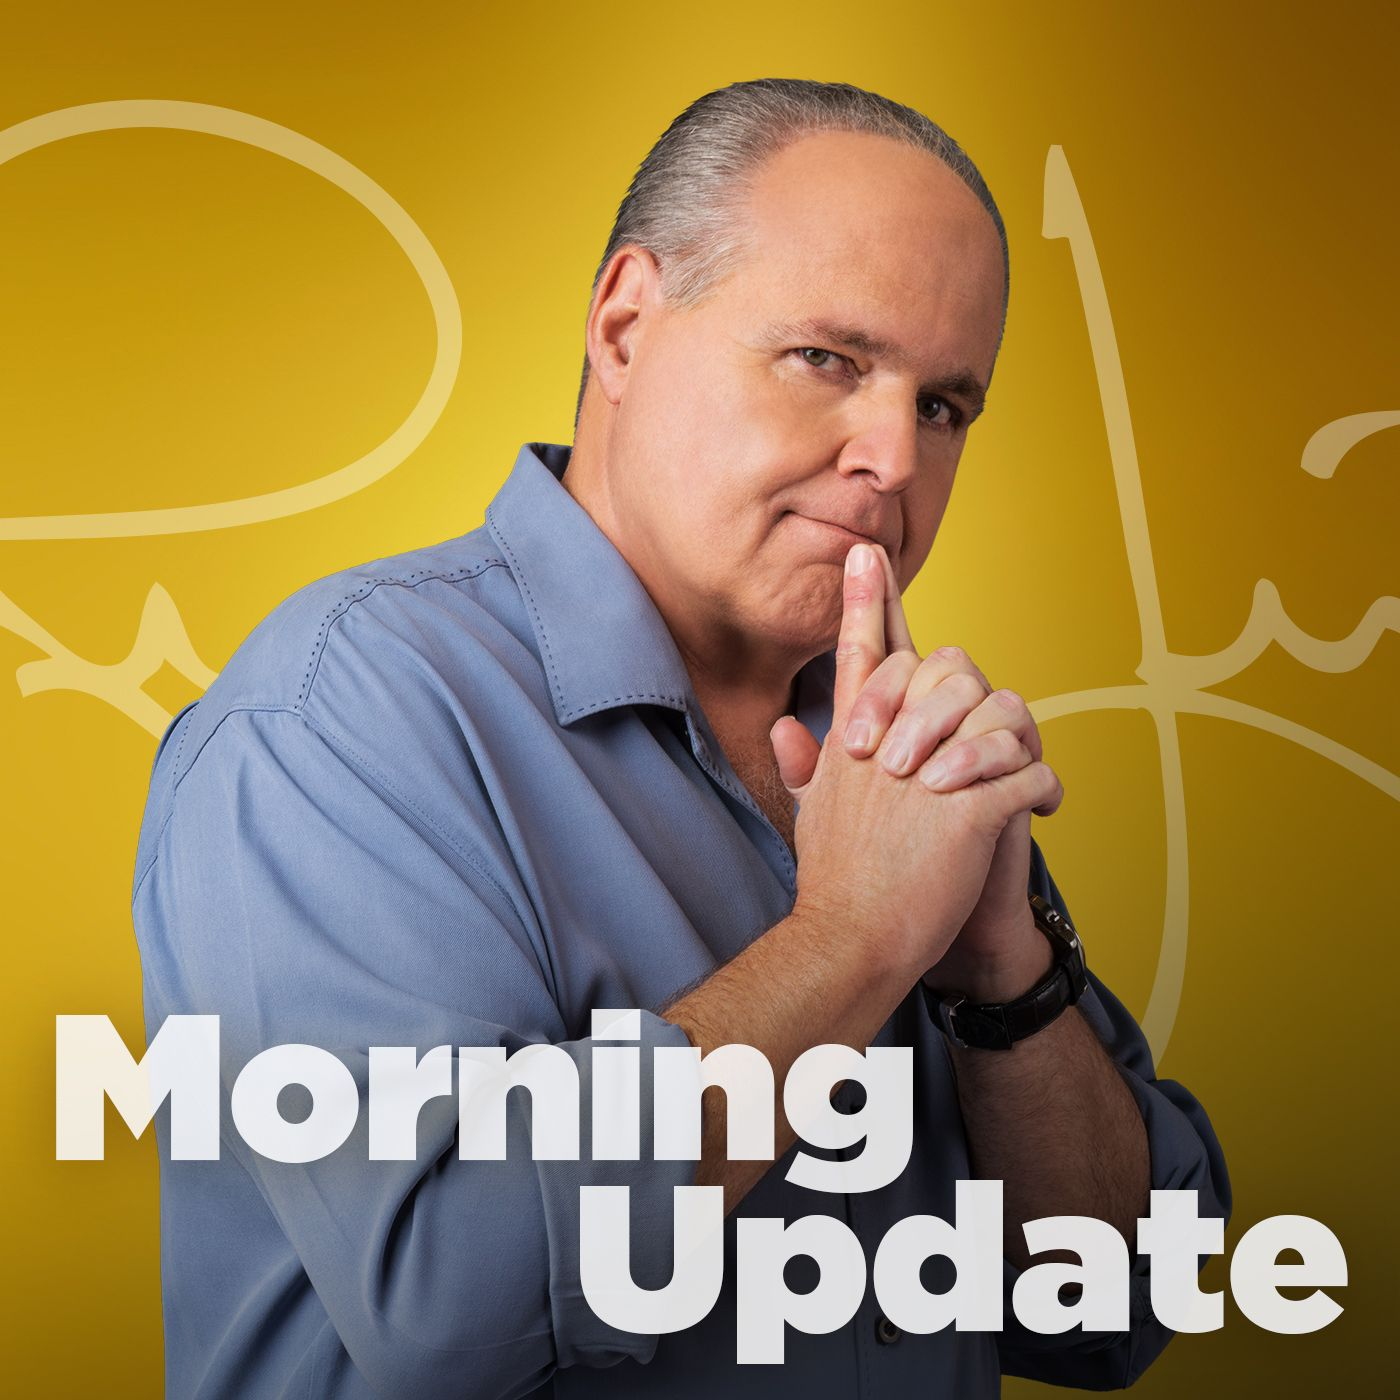 Rush Limbaugh Feb 03, 2020